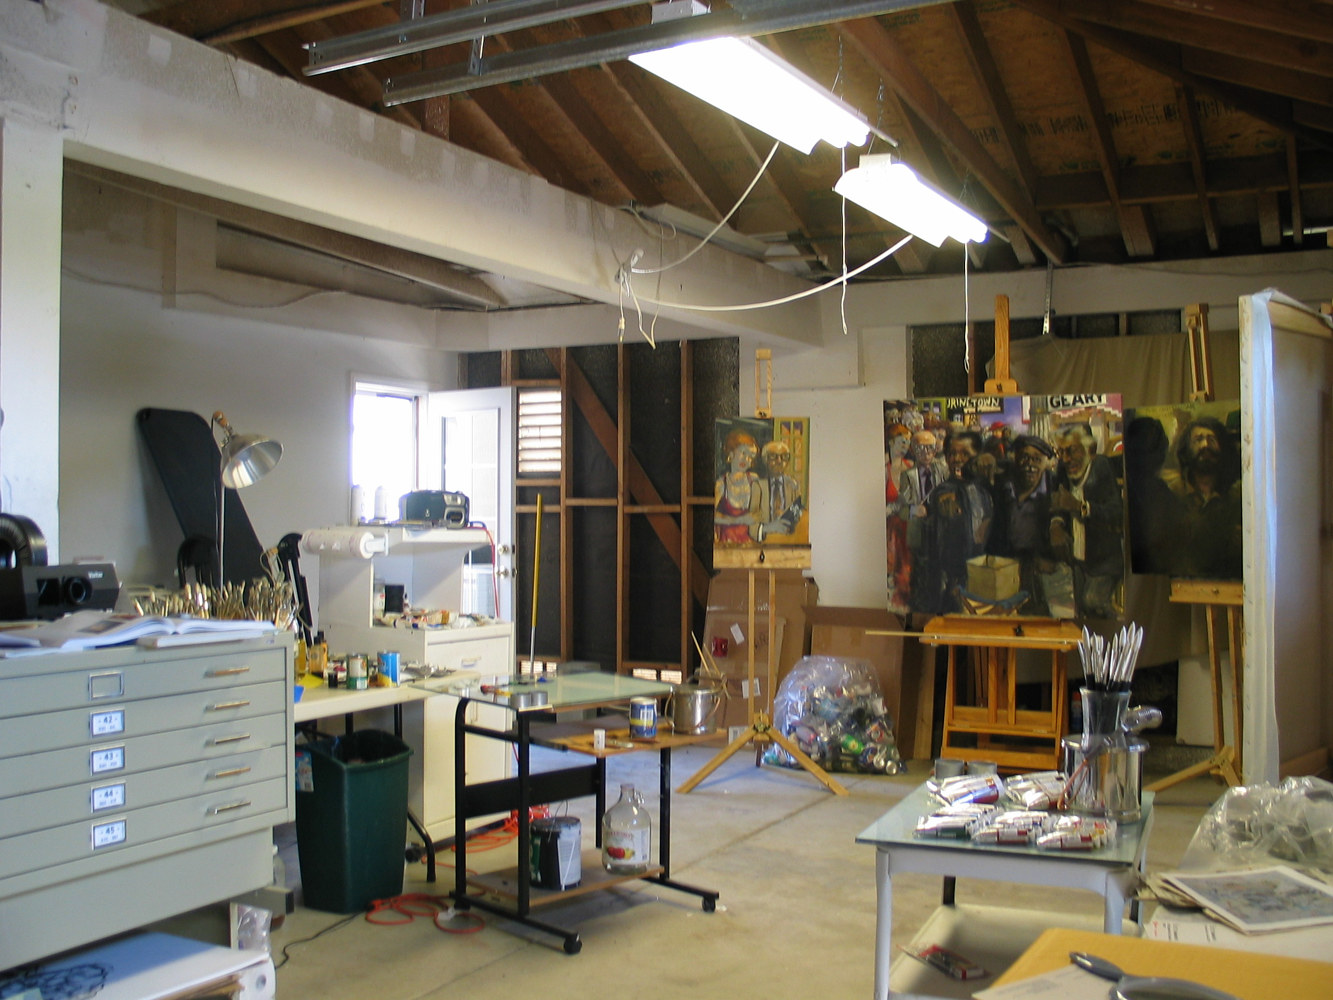 Studio view 4 with painting in progress by Josef-Peter  Roemer